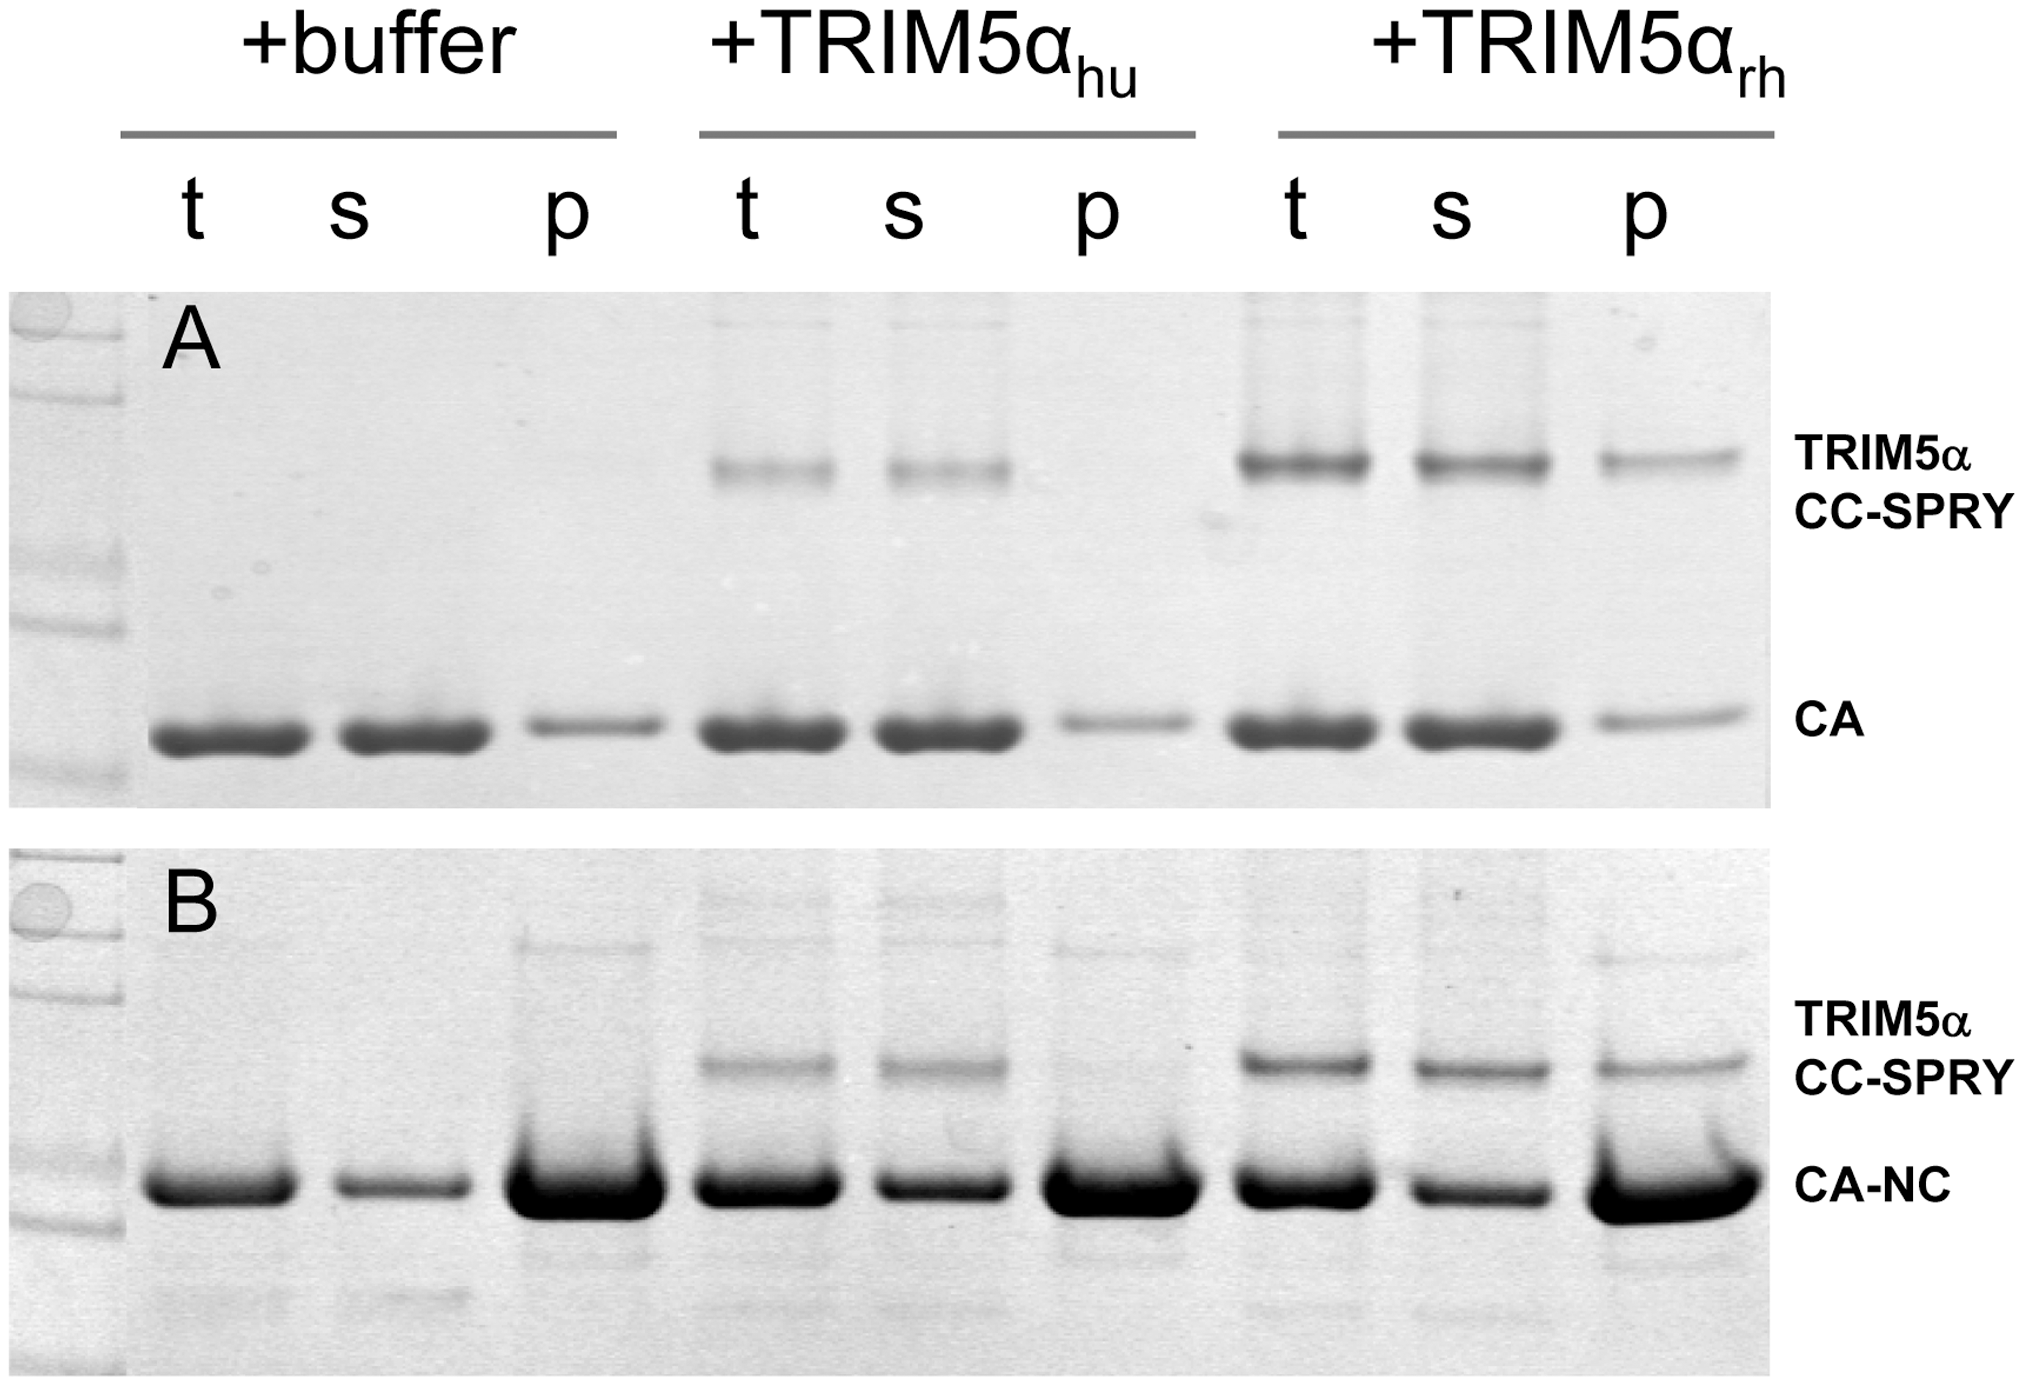 Binding of TRIM5α CC-SPRY to pre-assembled wild-type CA and CA-NC tubes.